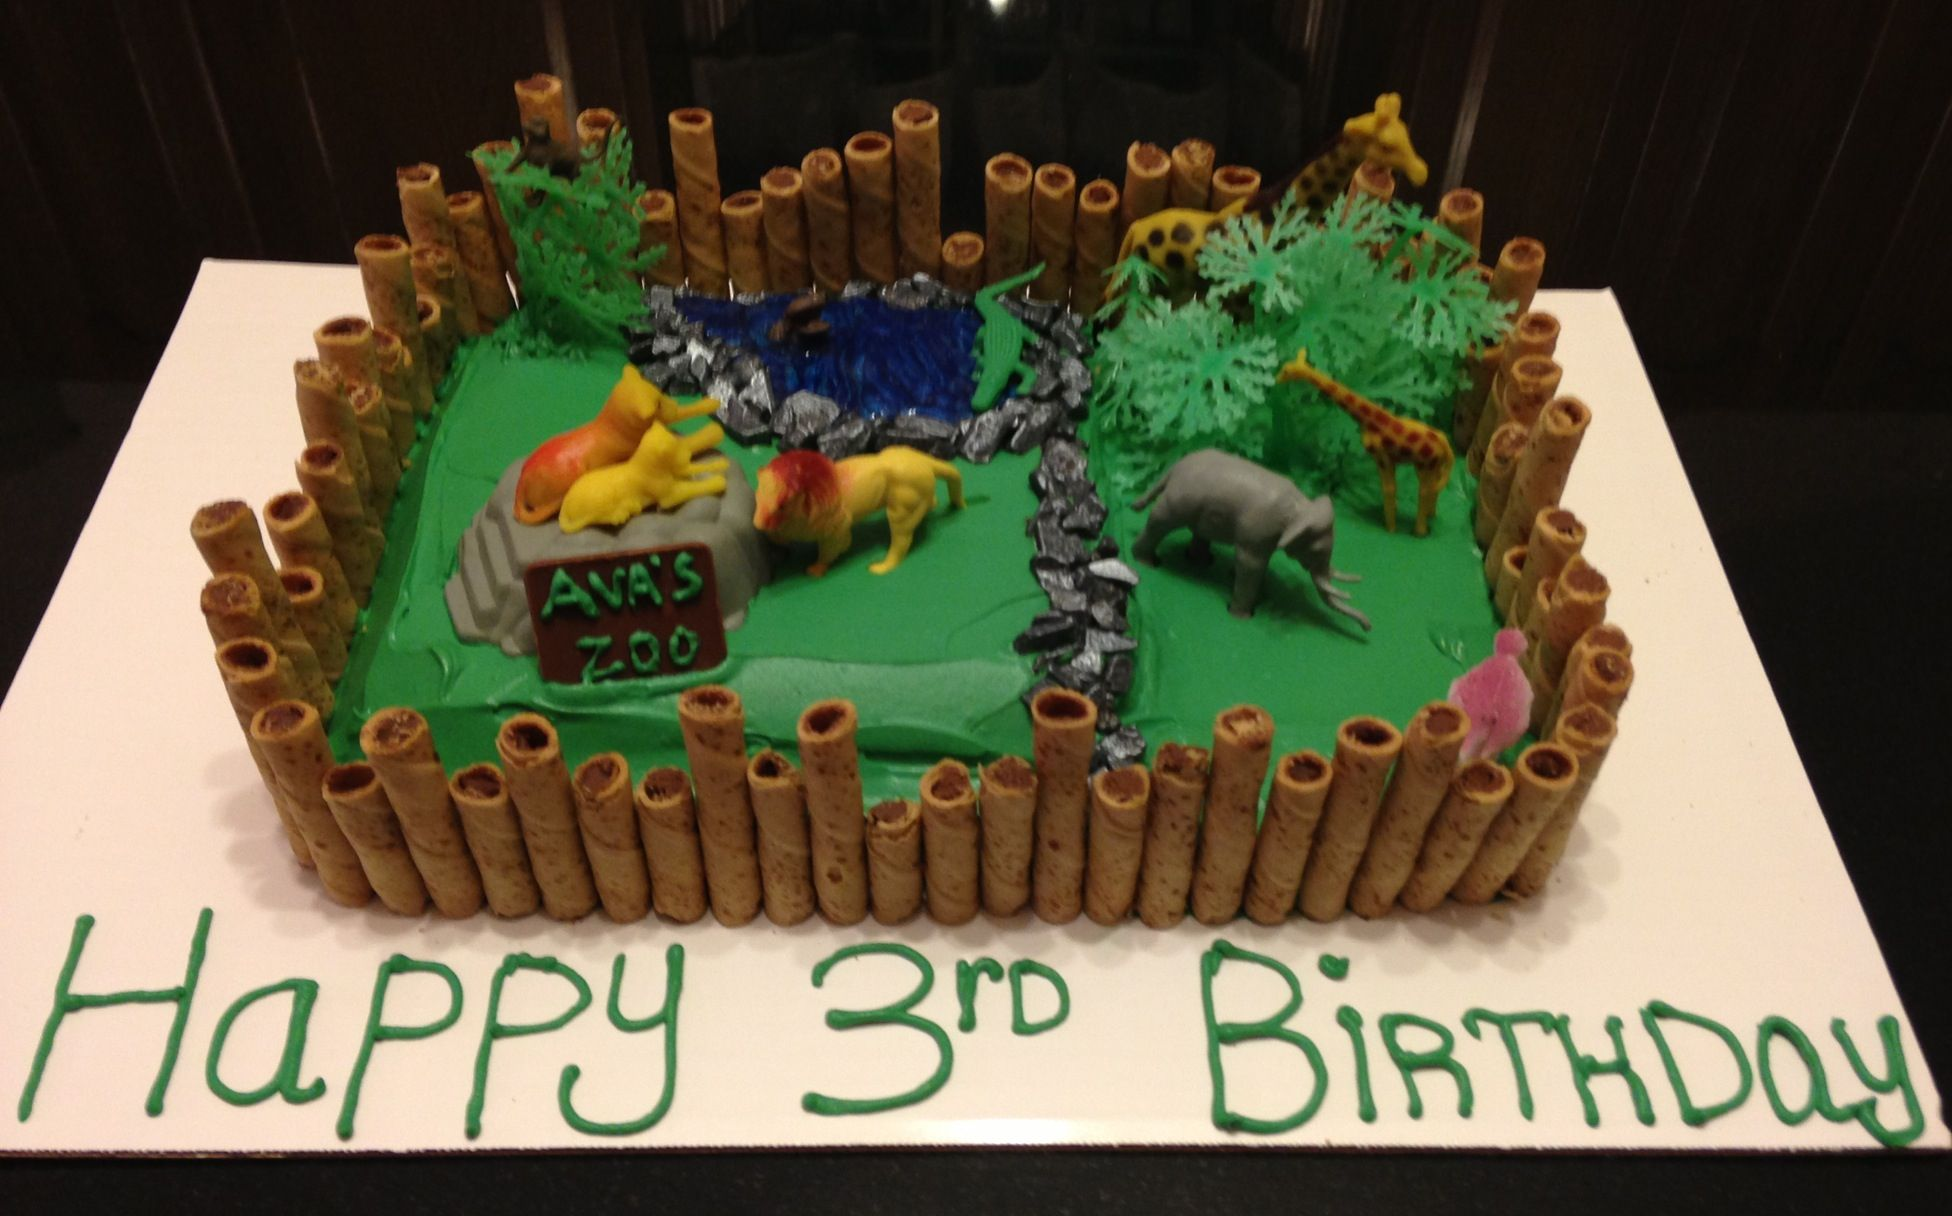 Stupendous Avas 3Rd Birthday She Loved Her Zoo Cake With Images Zoo Funny Birthday Cards Online Amentibdeldamsfinfo